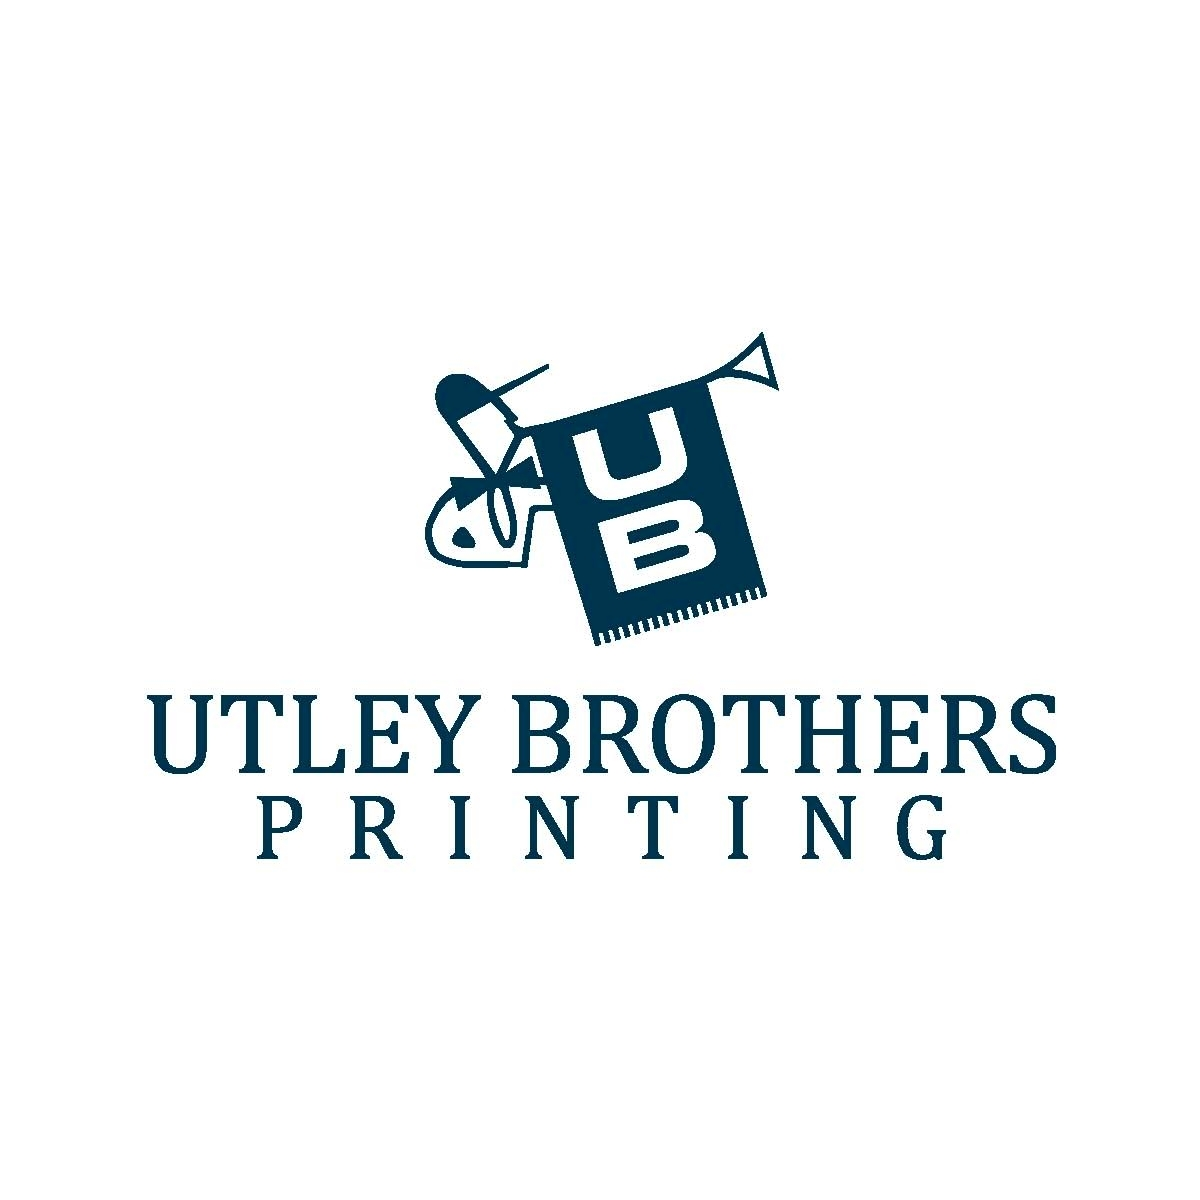 Utley Brothers Printing Company